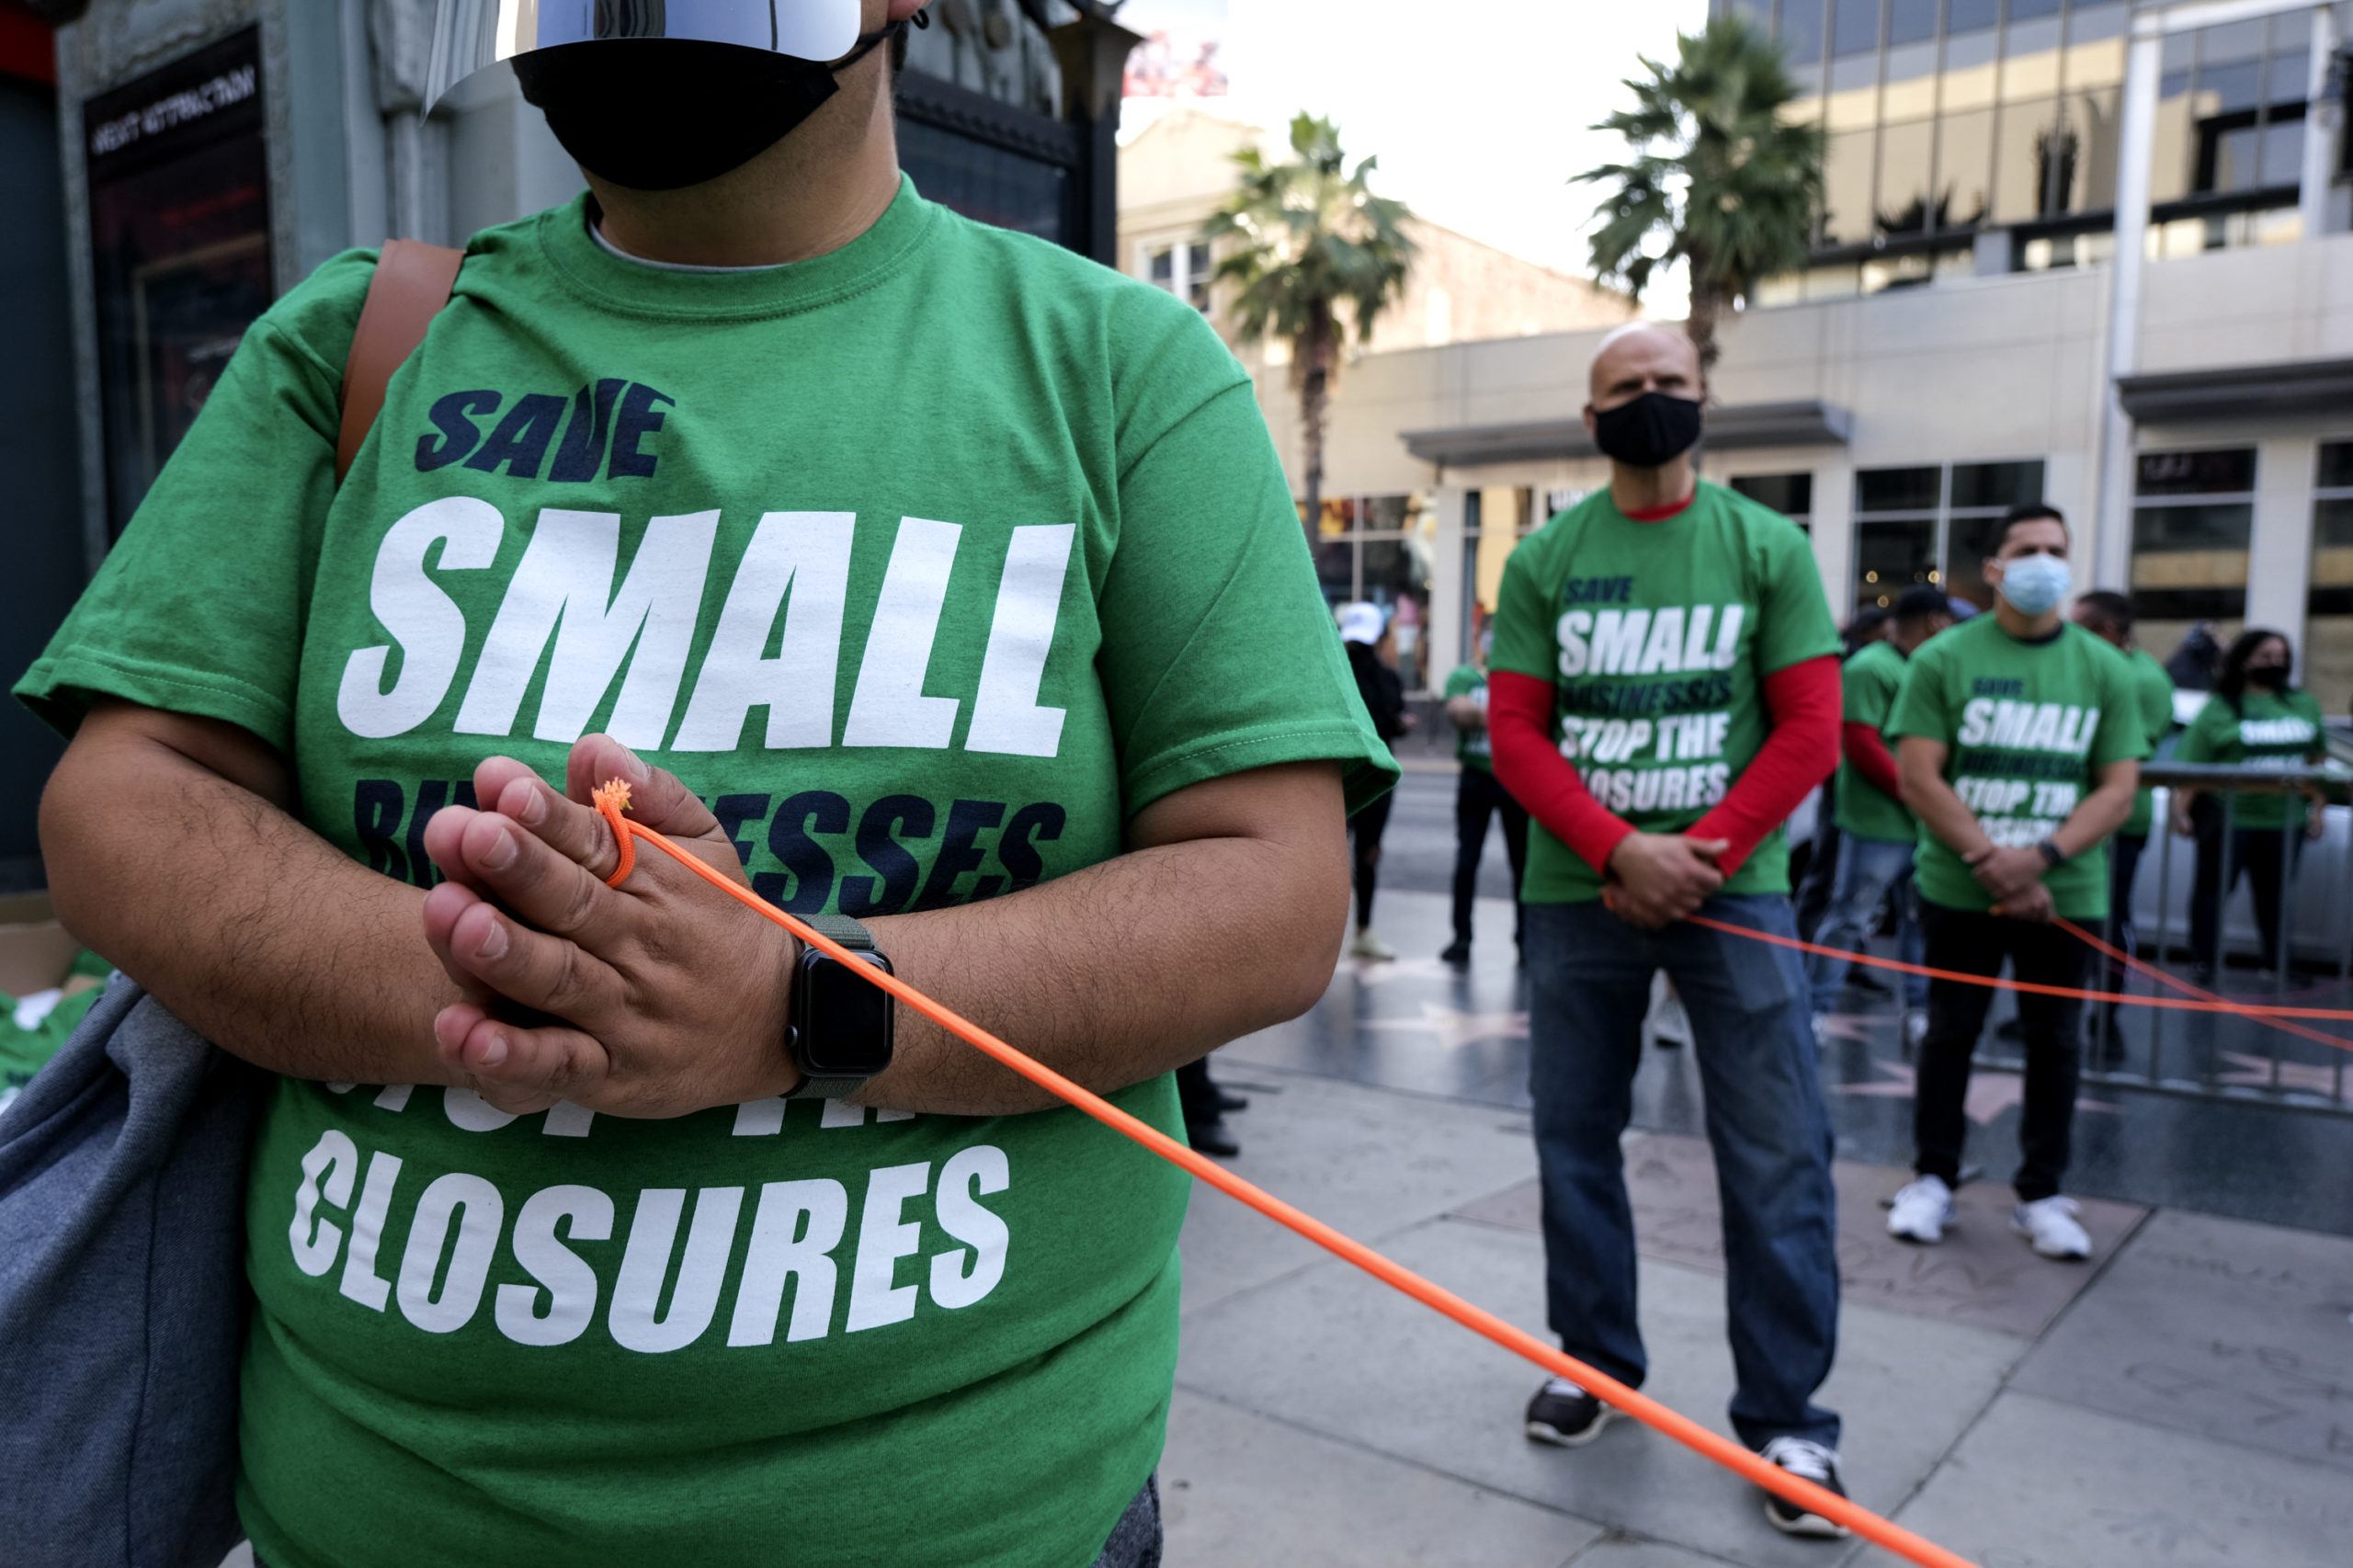 Small business owners protest in California on Dec. 12. (Ringo Chiu/AFP via Getty Images)